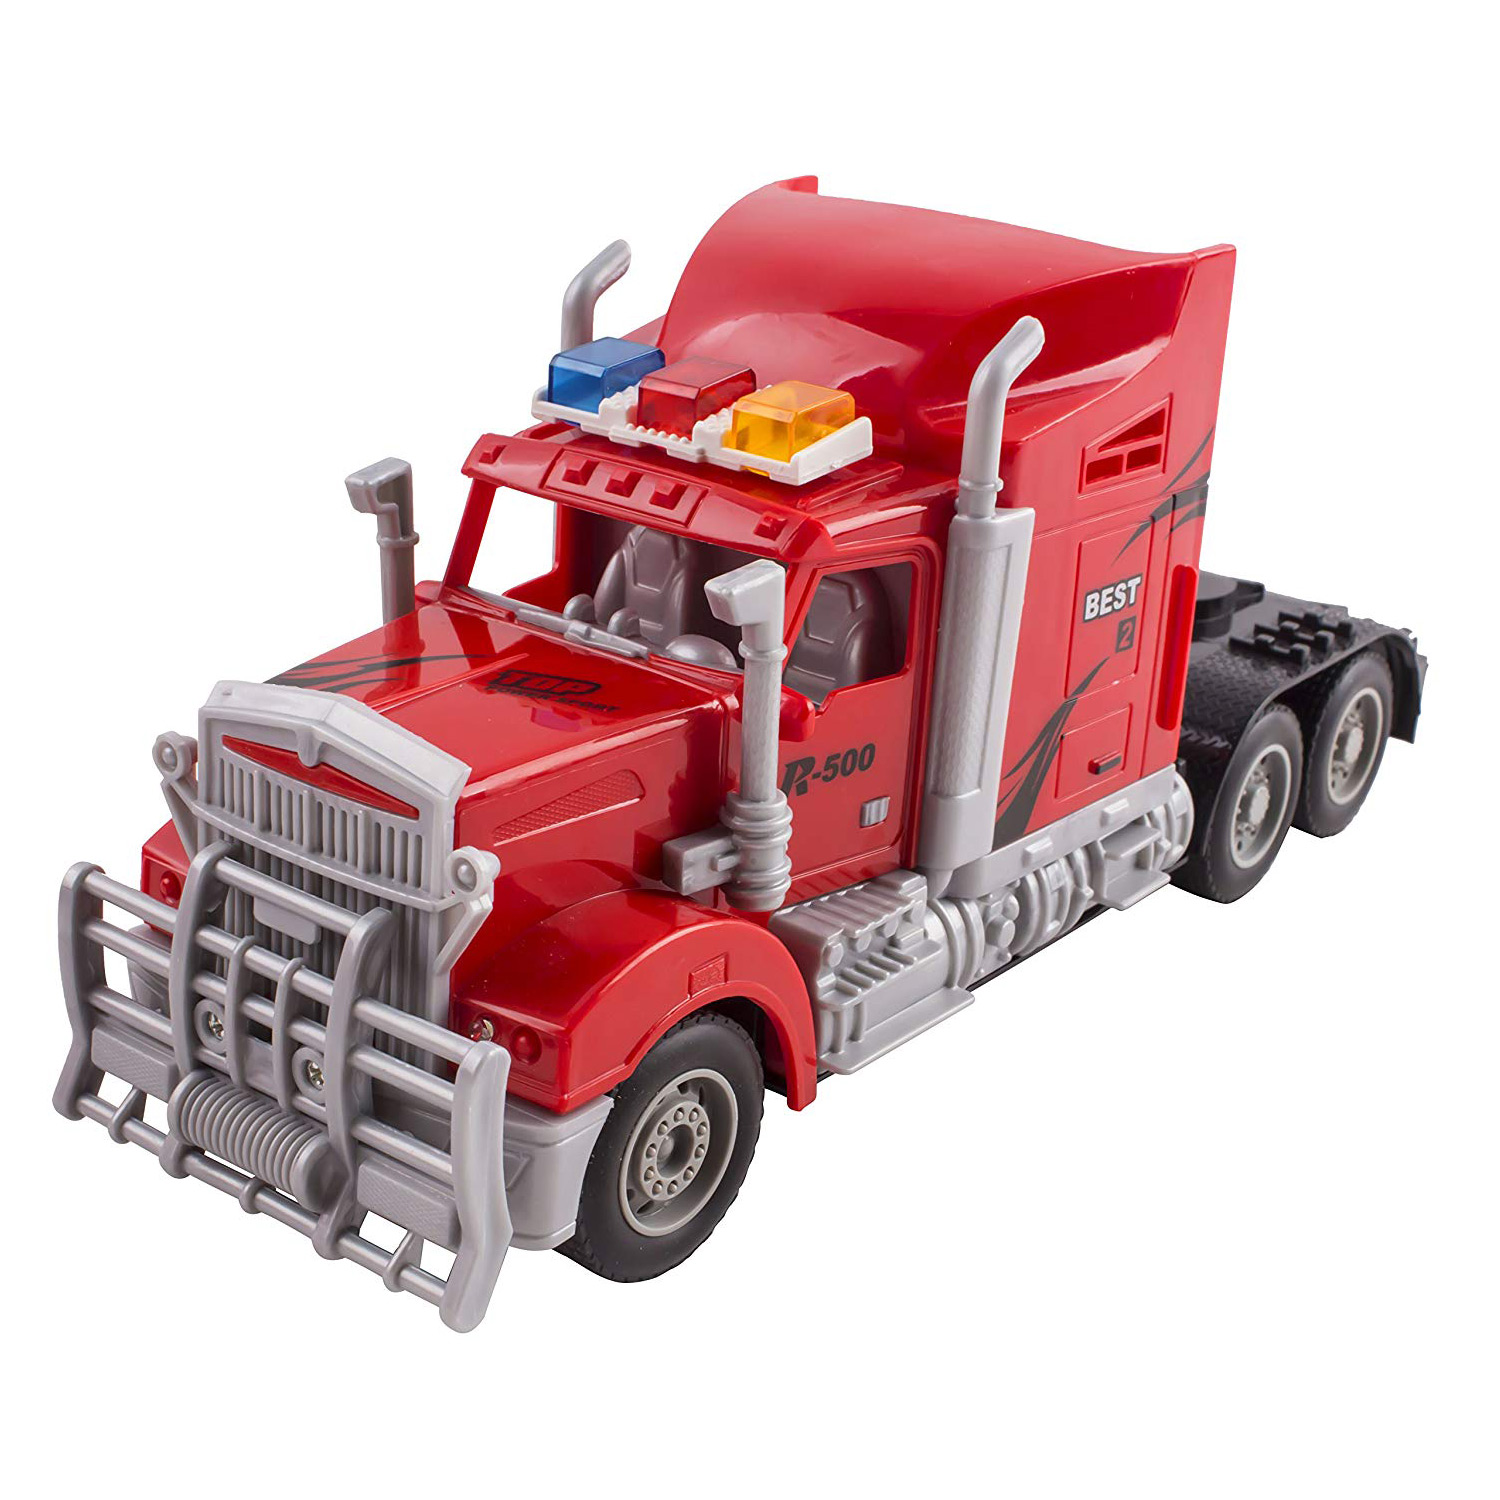 Toy Semi Truck Trailer 23 Electric Hauler Remote Control RC Childrens Transporter Ready To Run Full Cargo Perfect Big Rig For Kids Toys Red